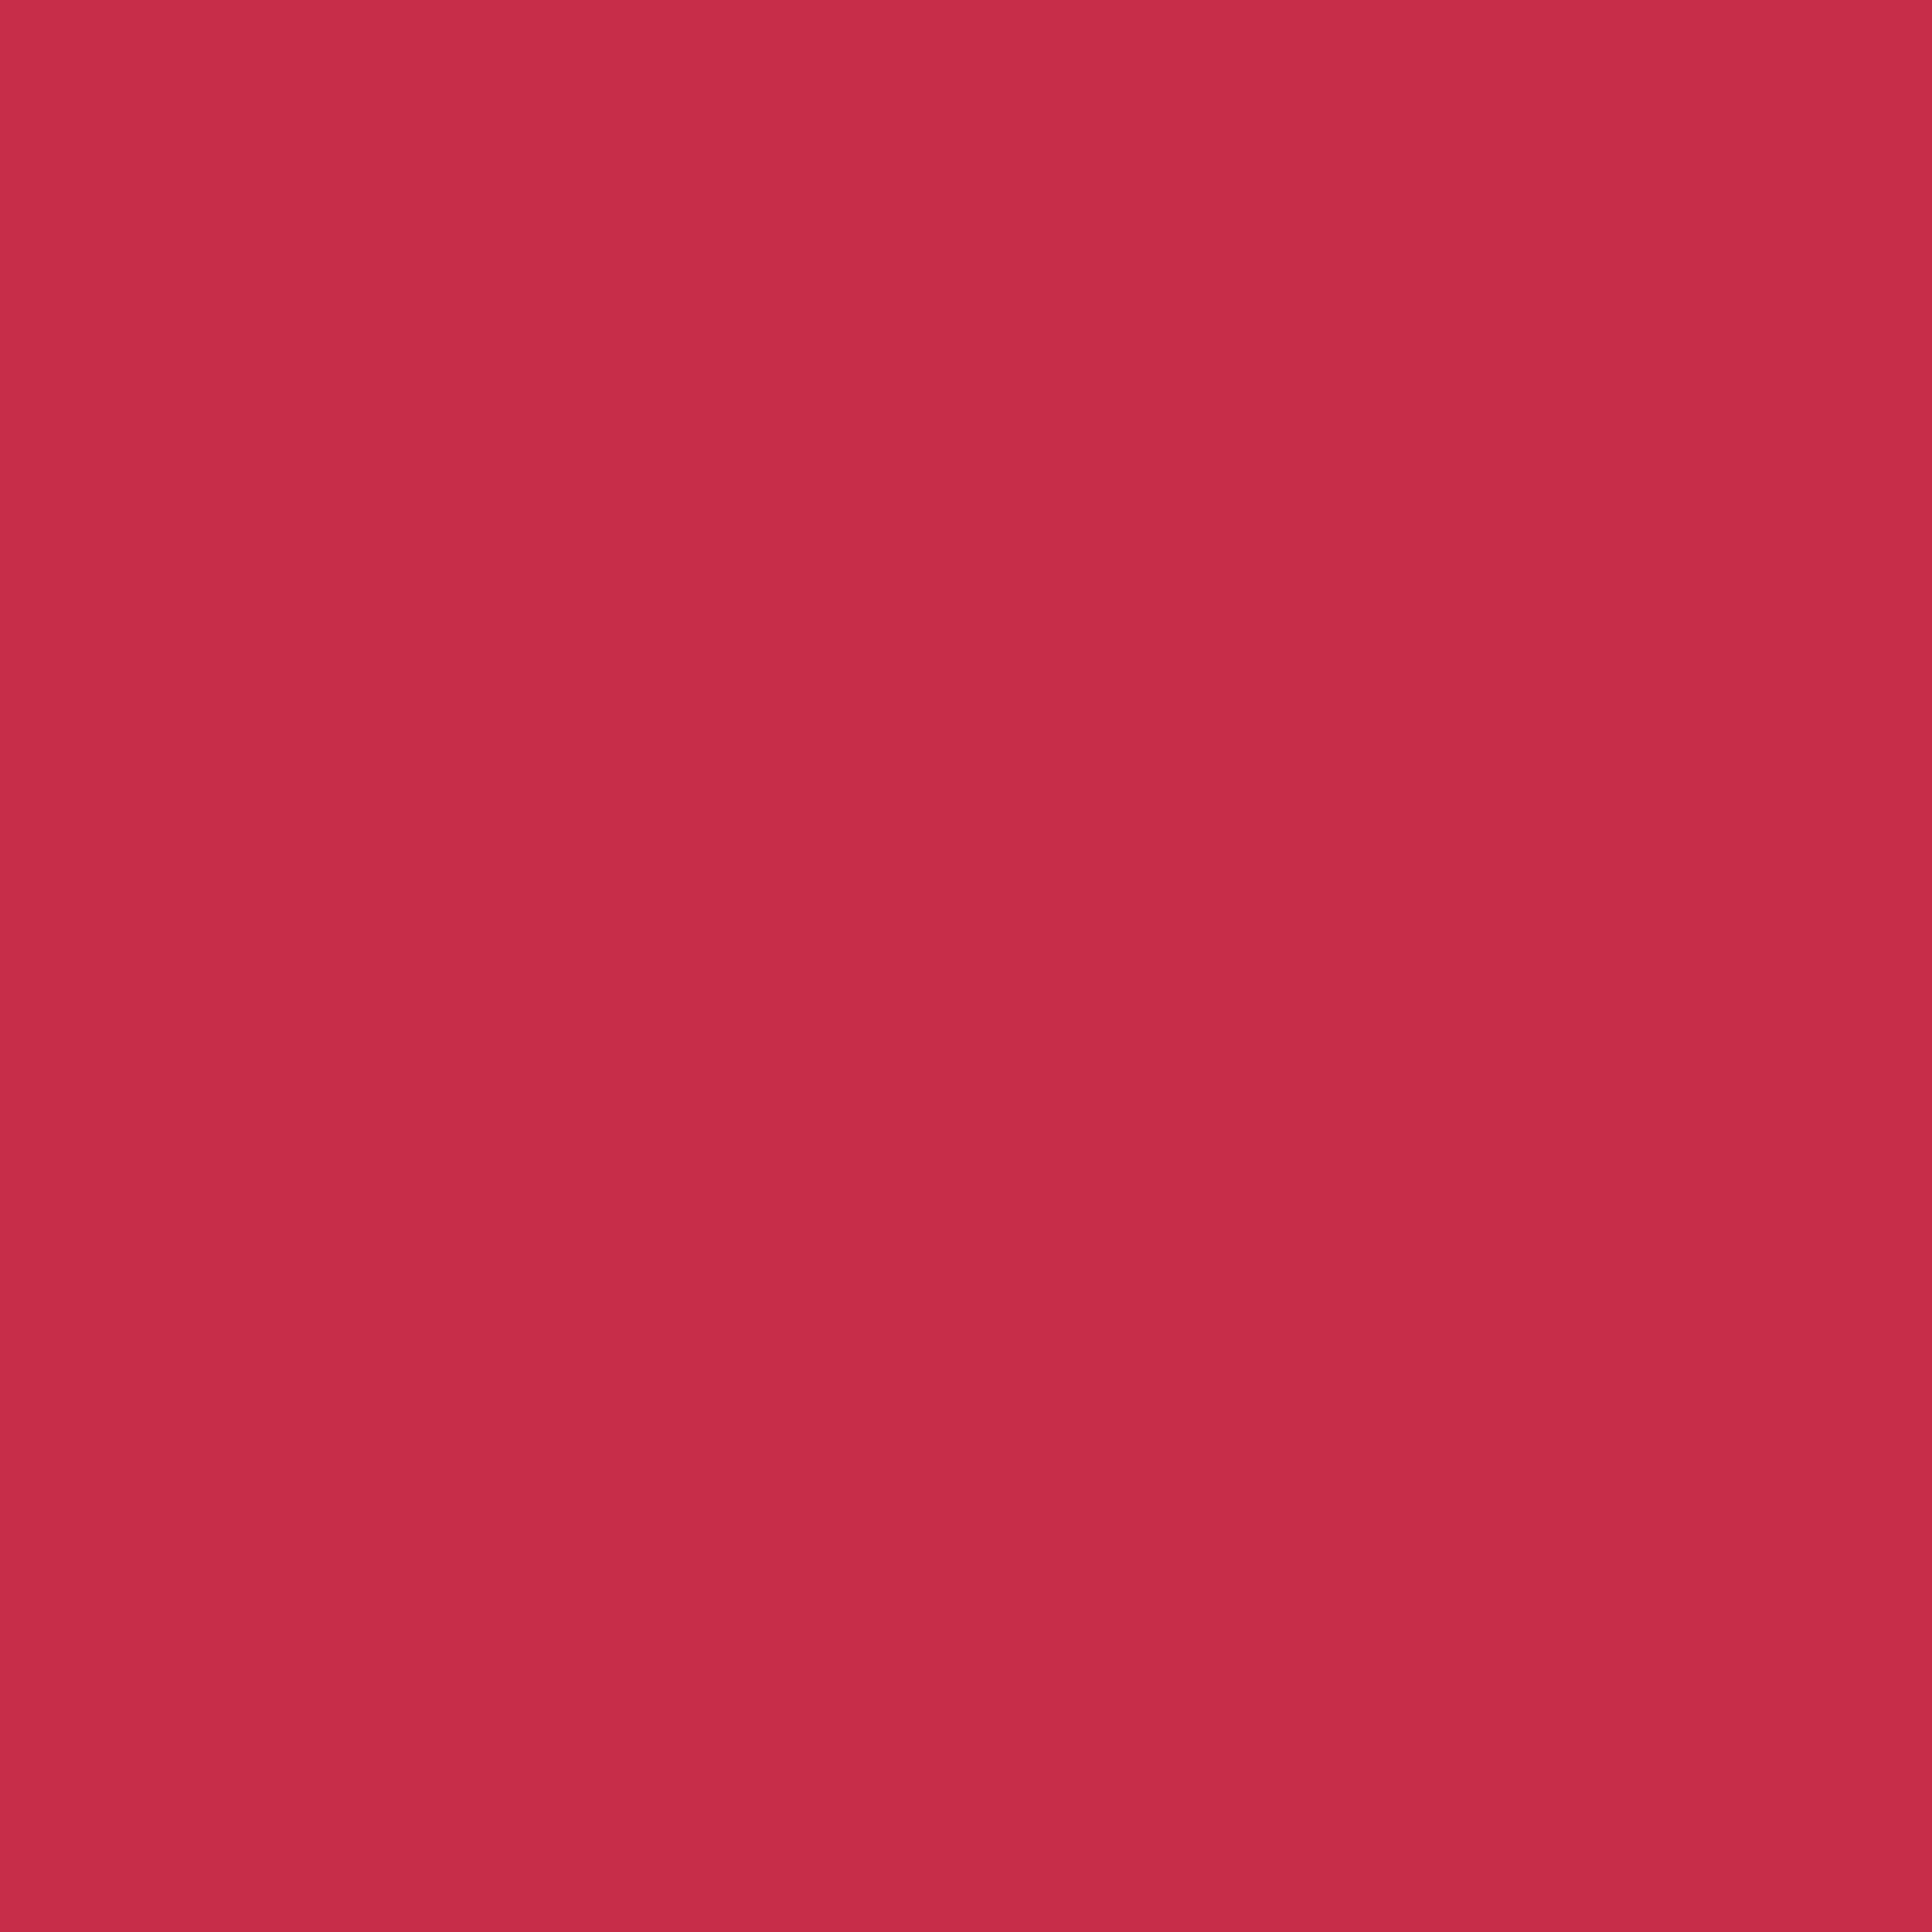 2048x2048 French Raspberry Solid Color Background